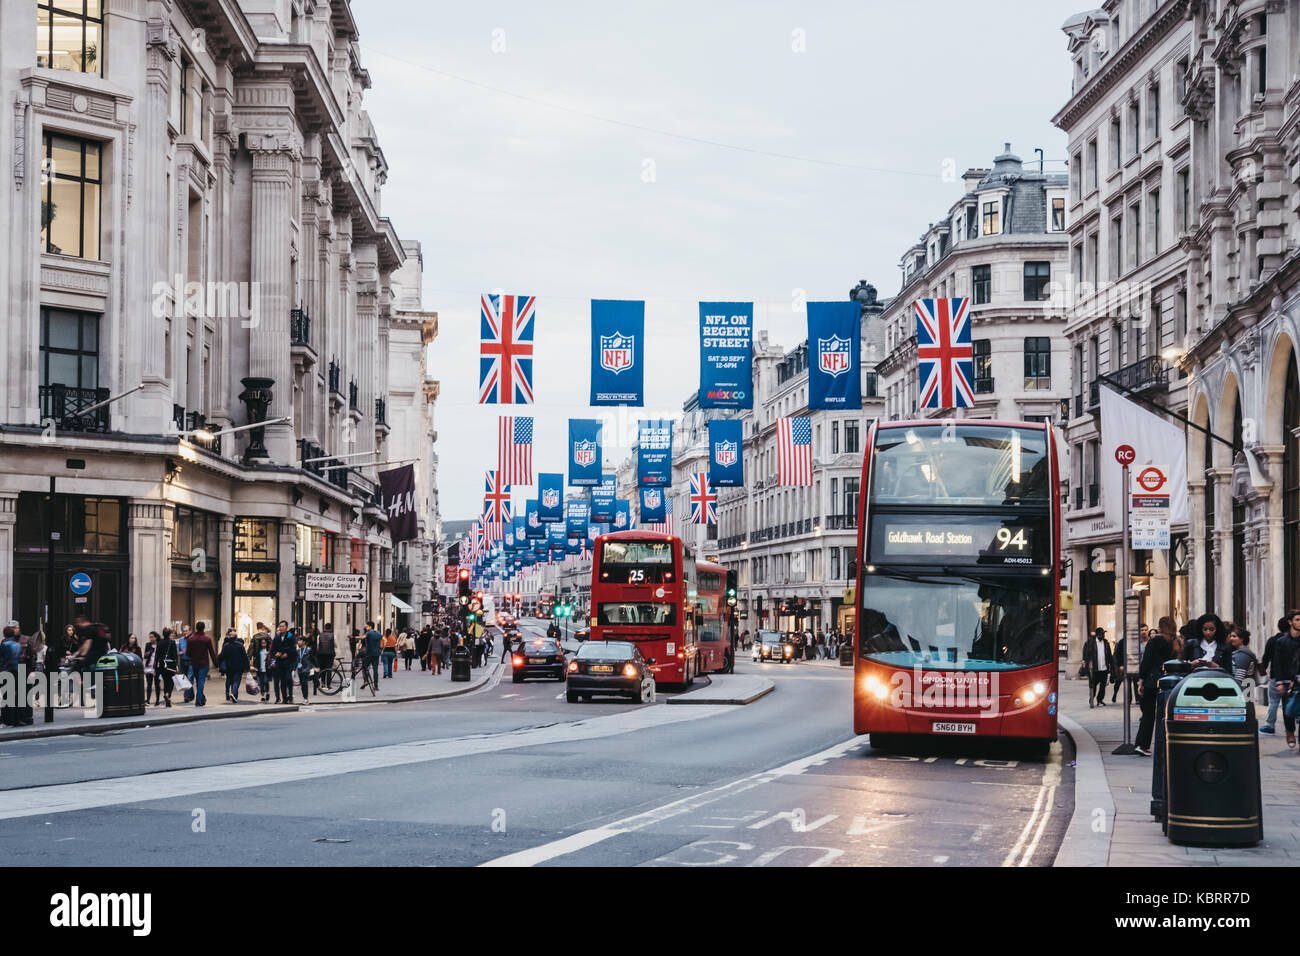 Red double-decker buses on Regent Street, London. The street is decorated with NFL flags to celebrate the event - Stock Image